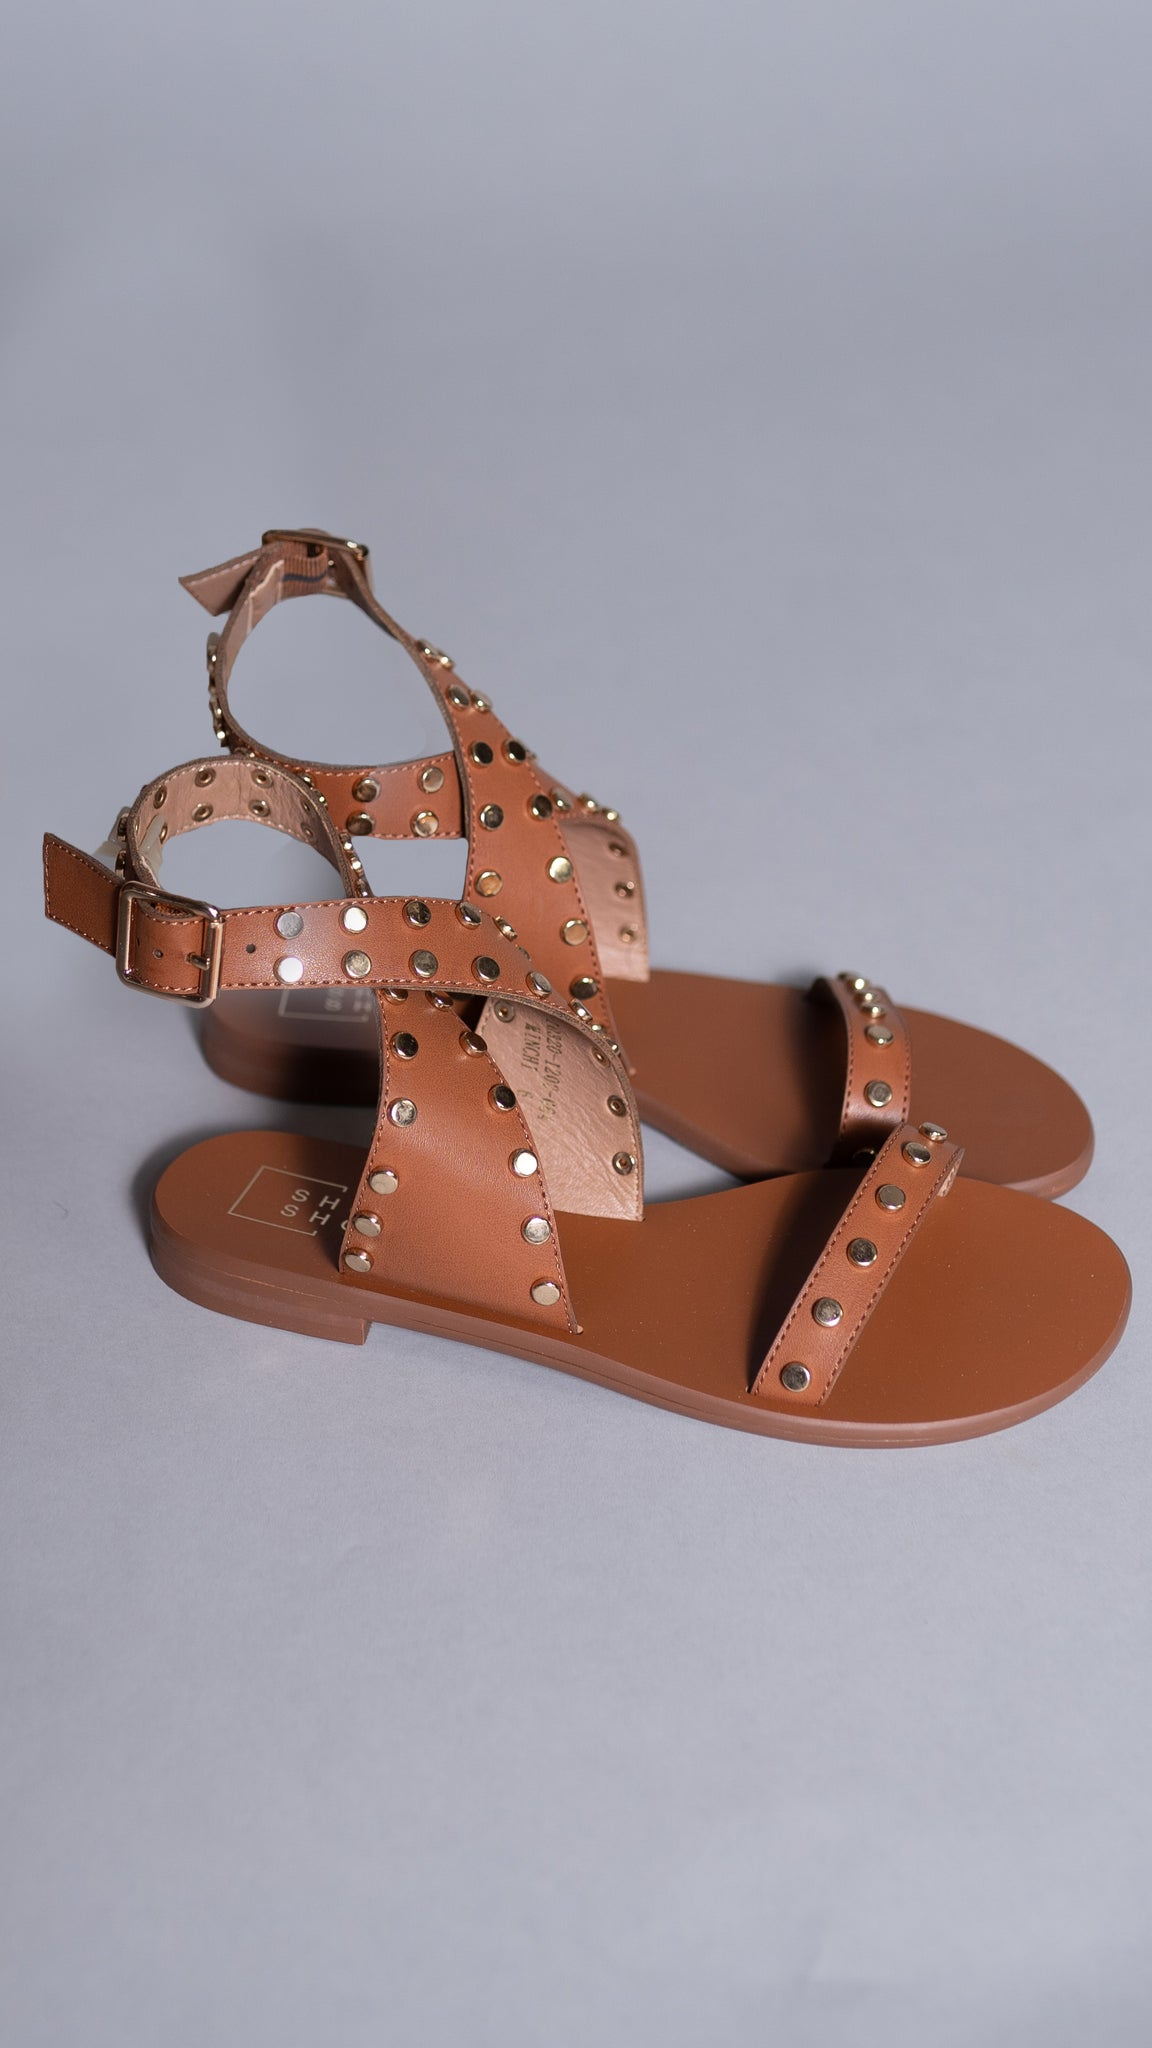 brown gladiator sandals with gold stud accents from Rosa Lee Boutique